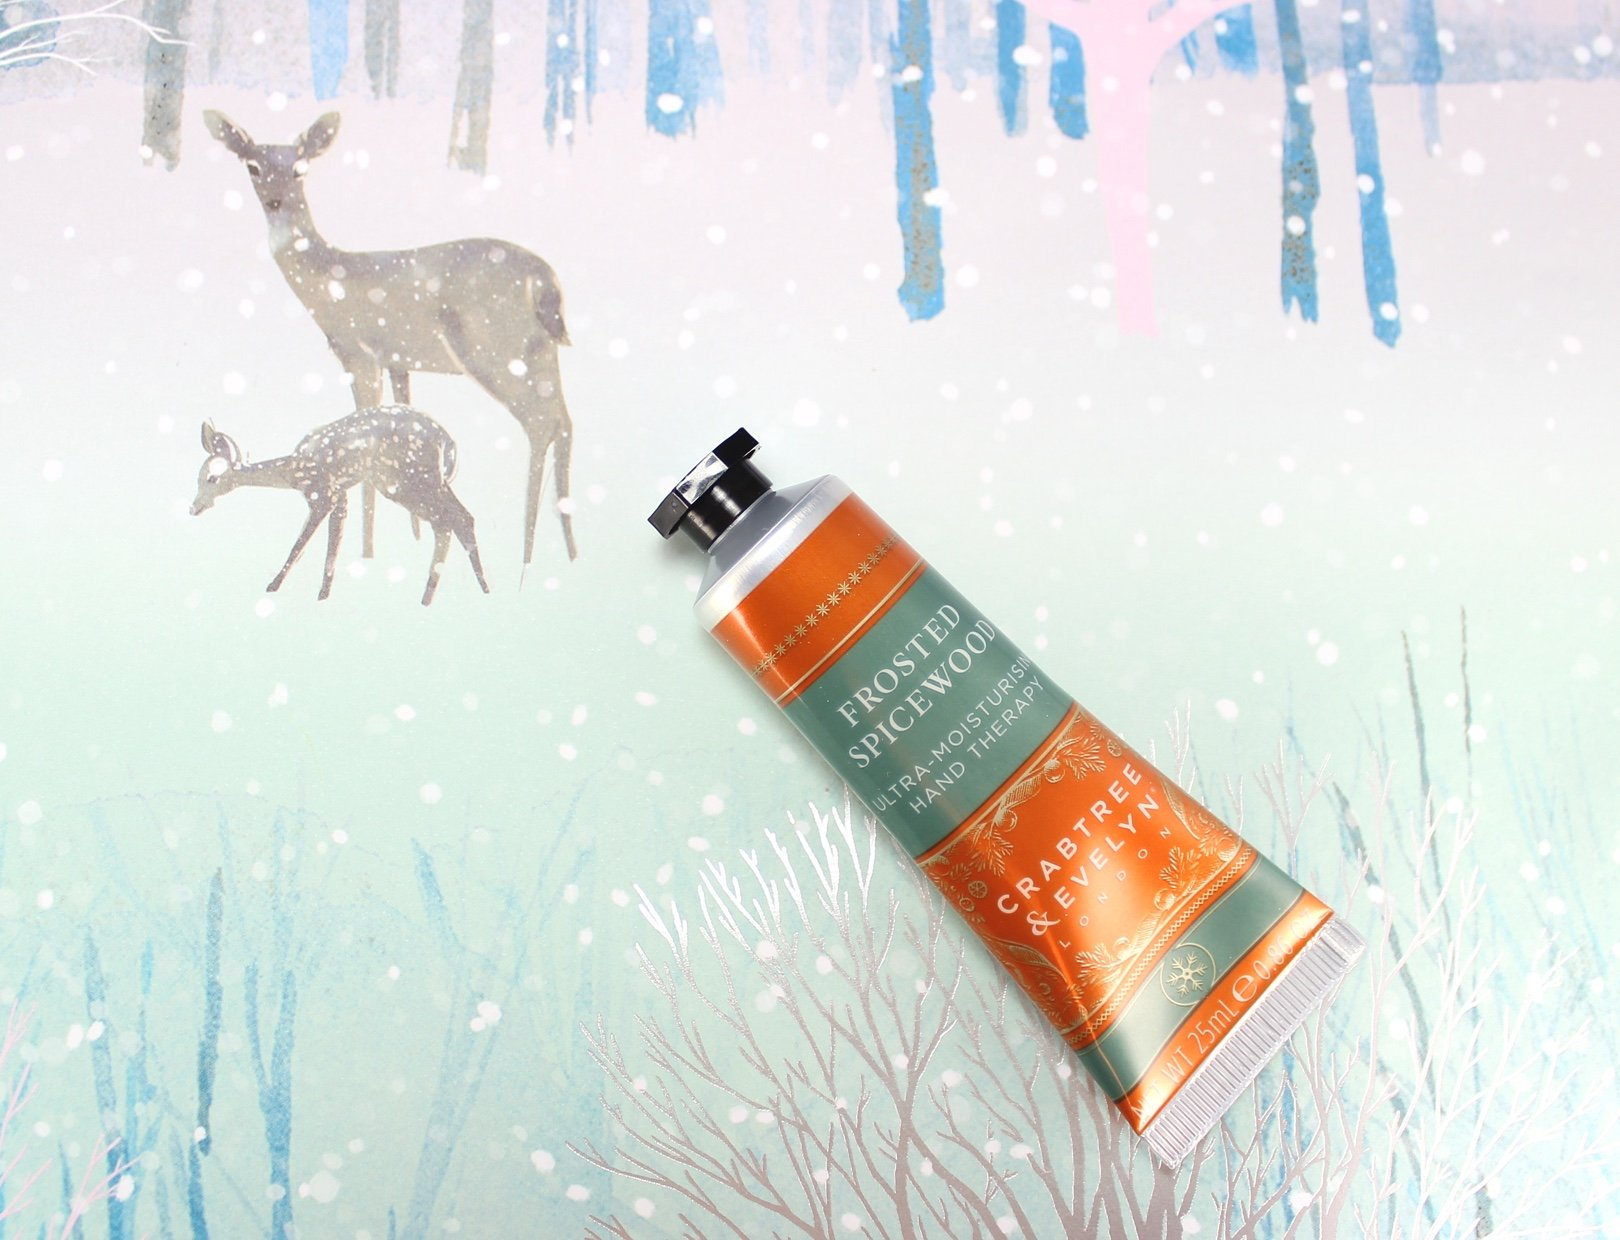 12 days of crabtree & evelyn advent calendar frosted spicewood